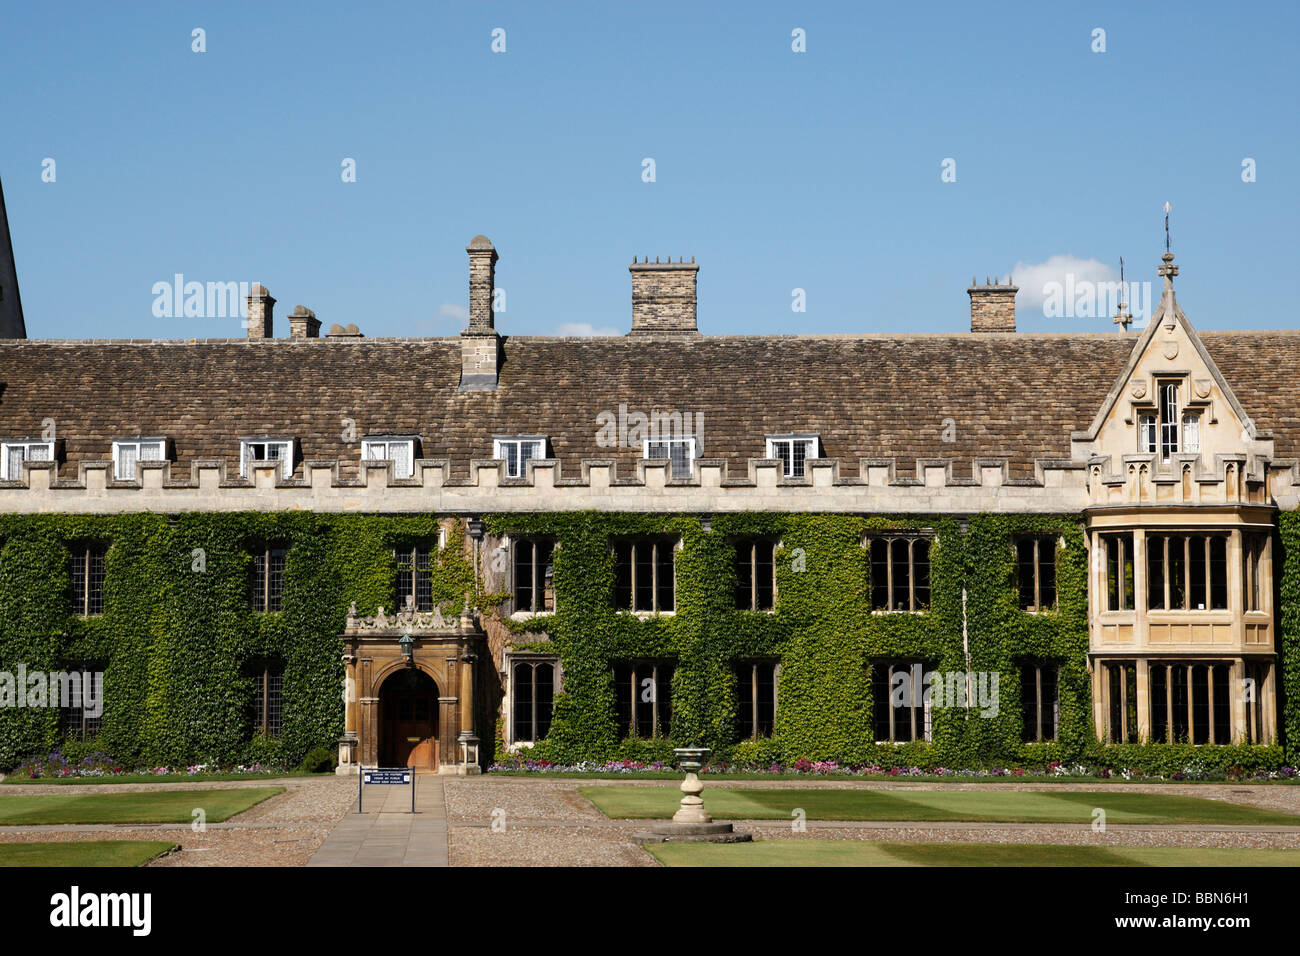 facade of trinity college masters lodge founded in 1546 trinity street cambridge uk - Stock Image